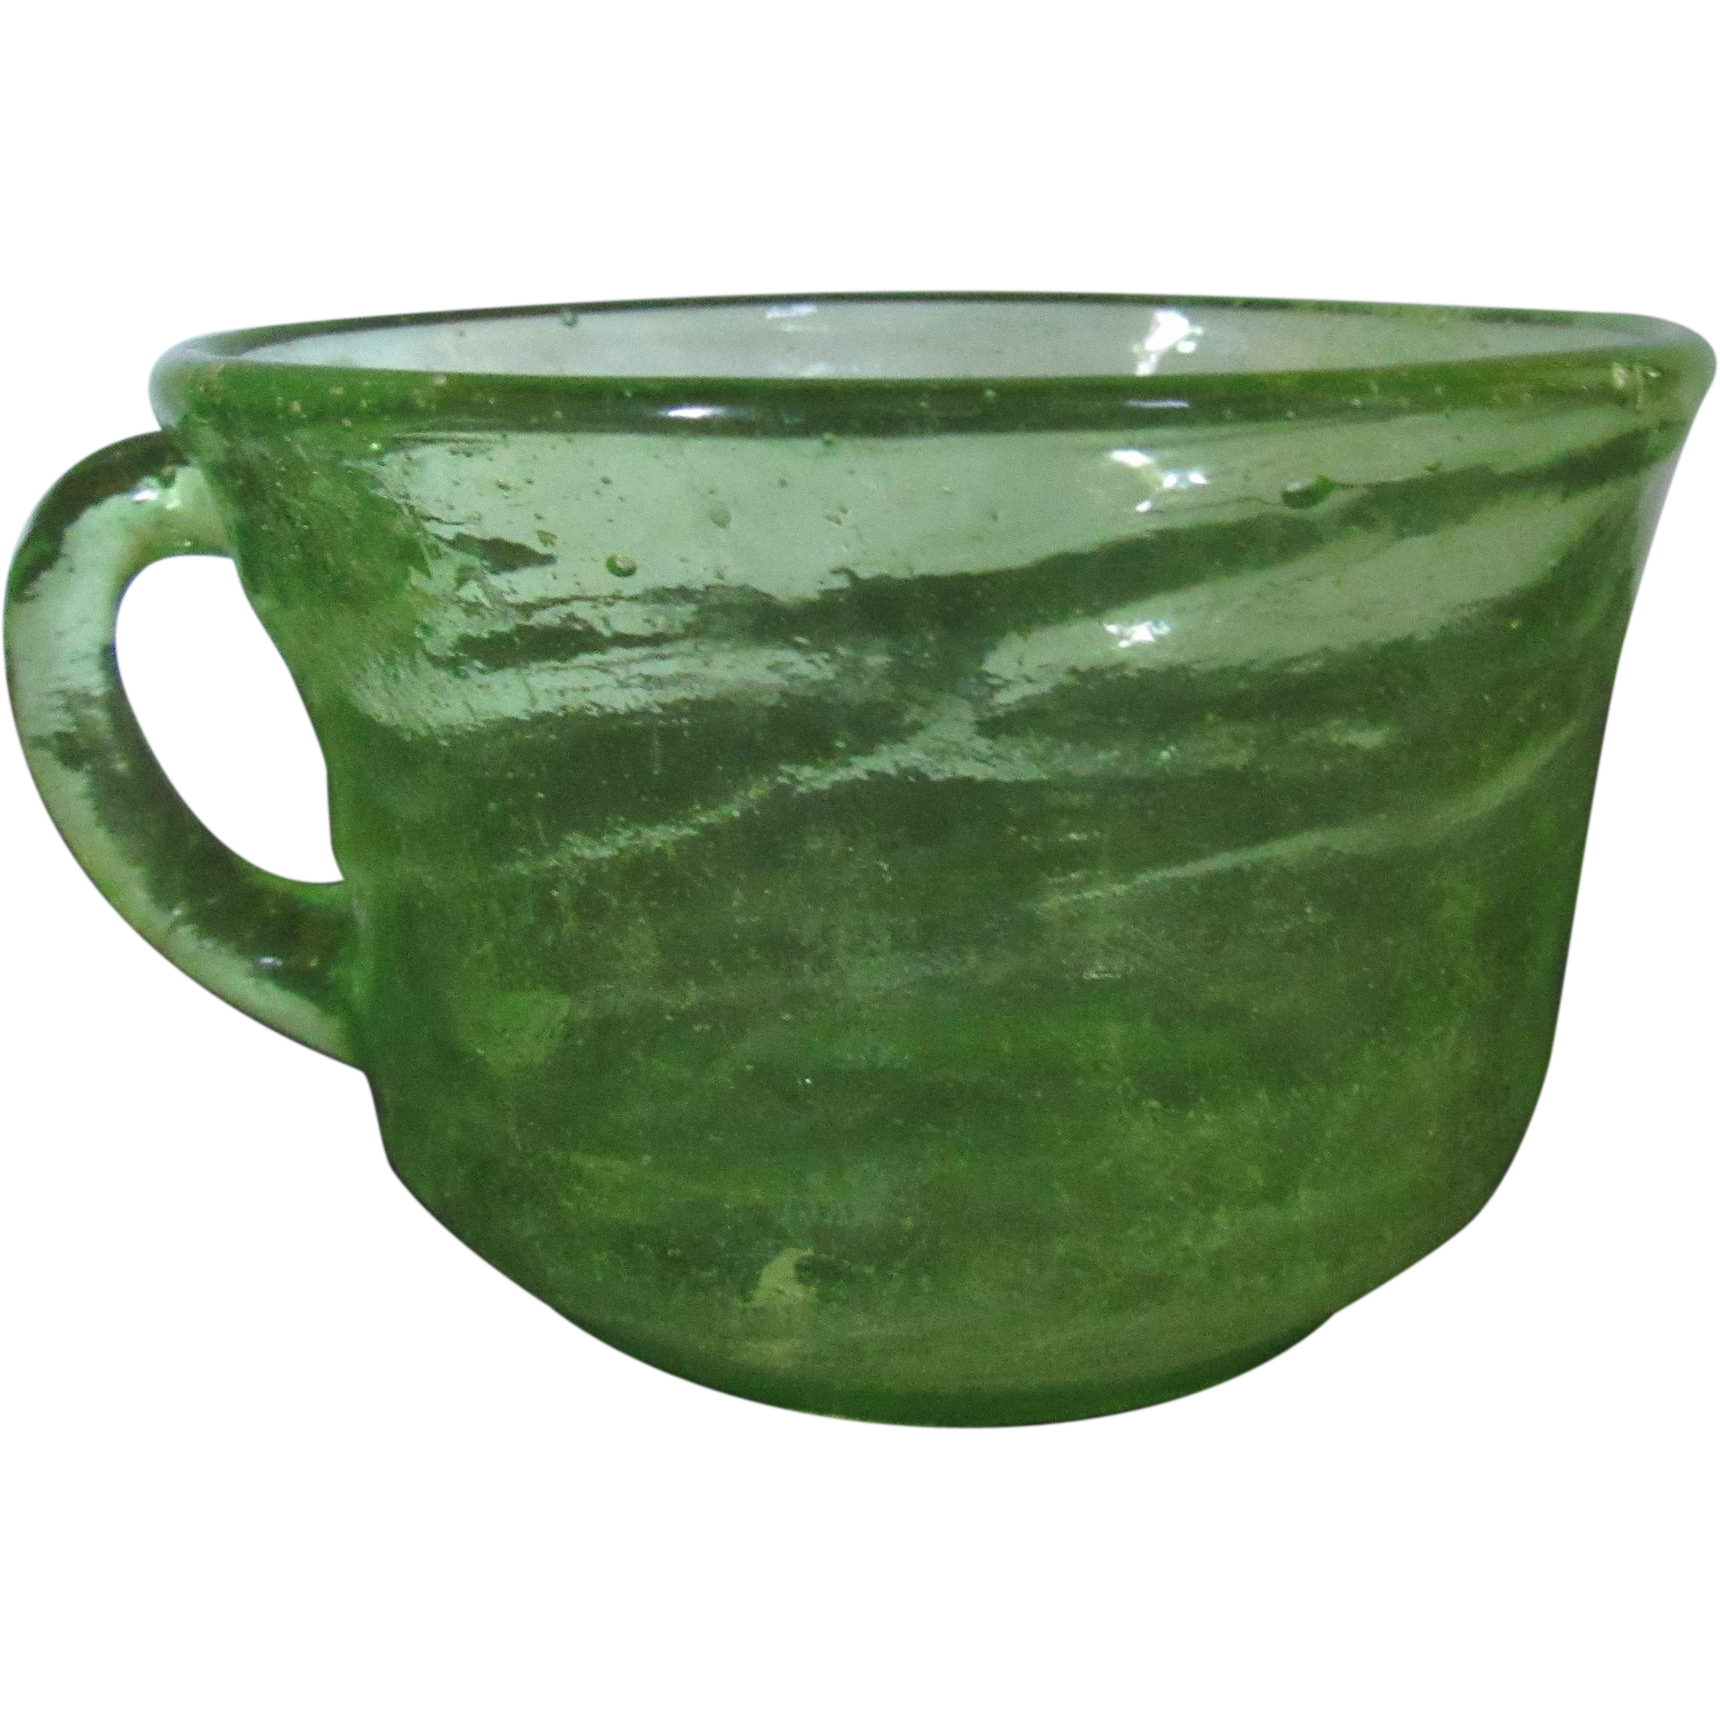 Consolidated Catalonian Emerald Green teacup